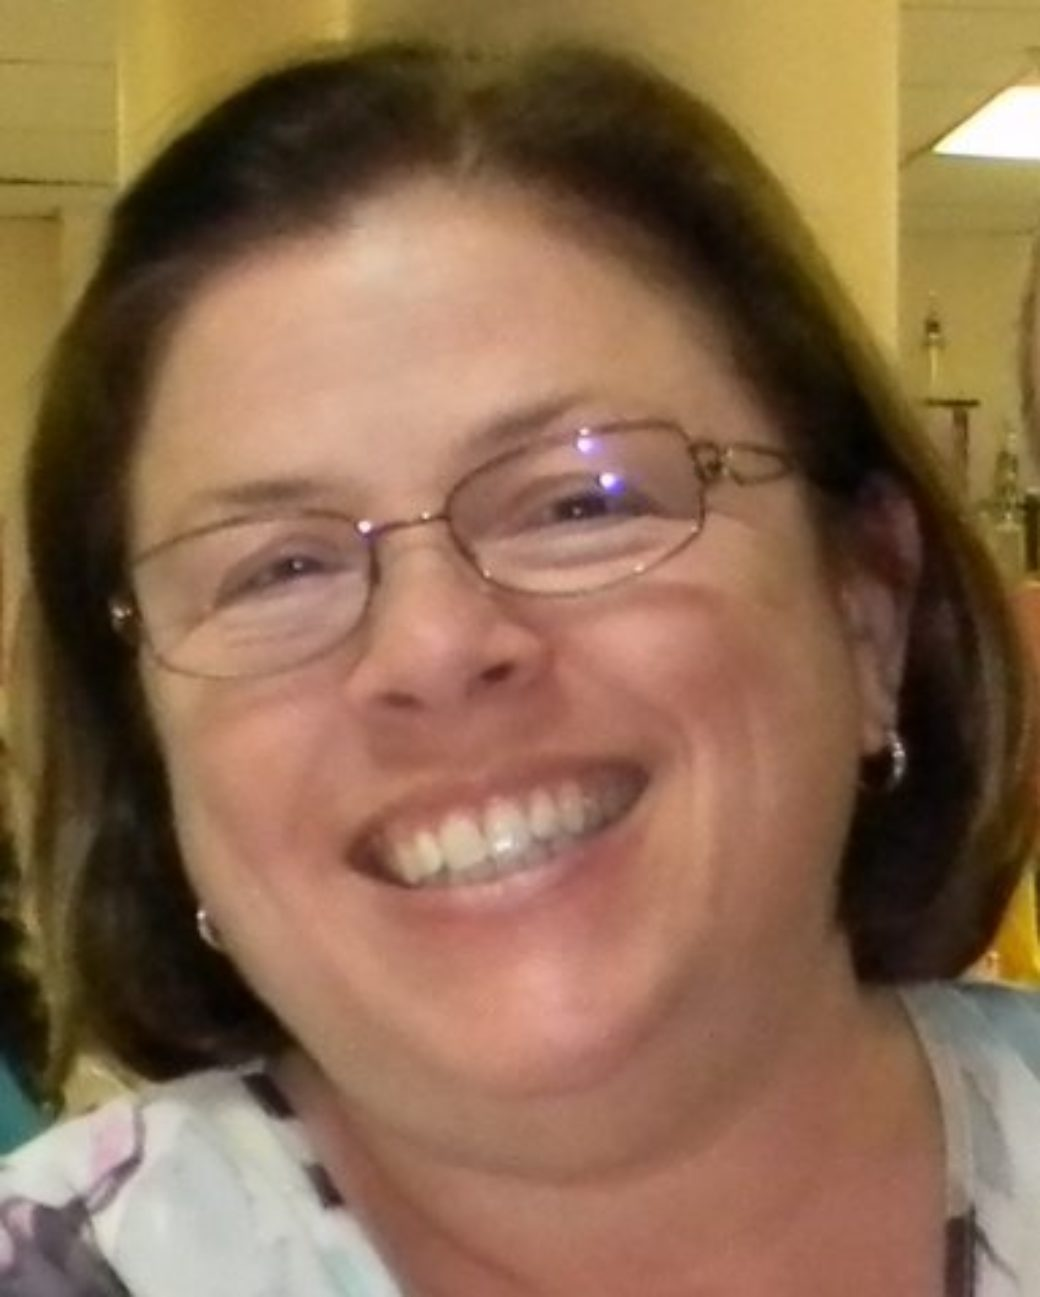 Color photo of a woman with short, brown hair wearing glasses smiles at the camera.